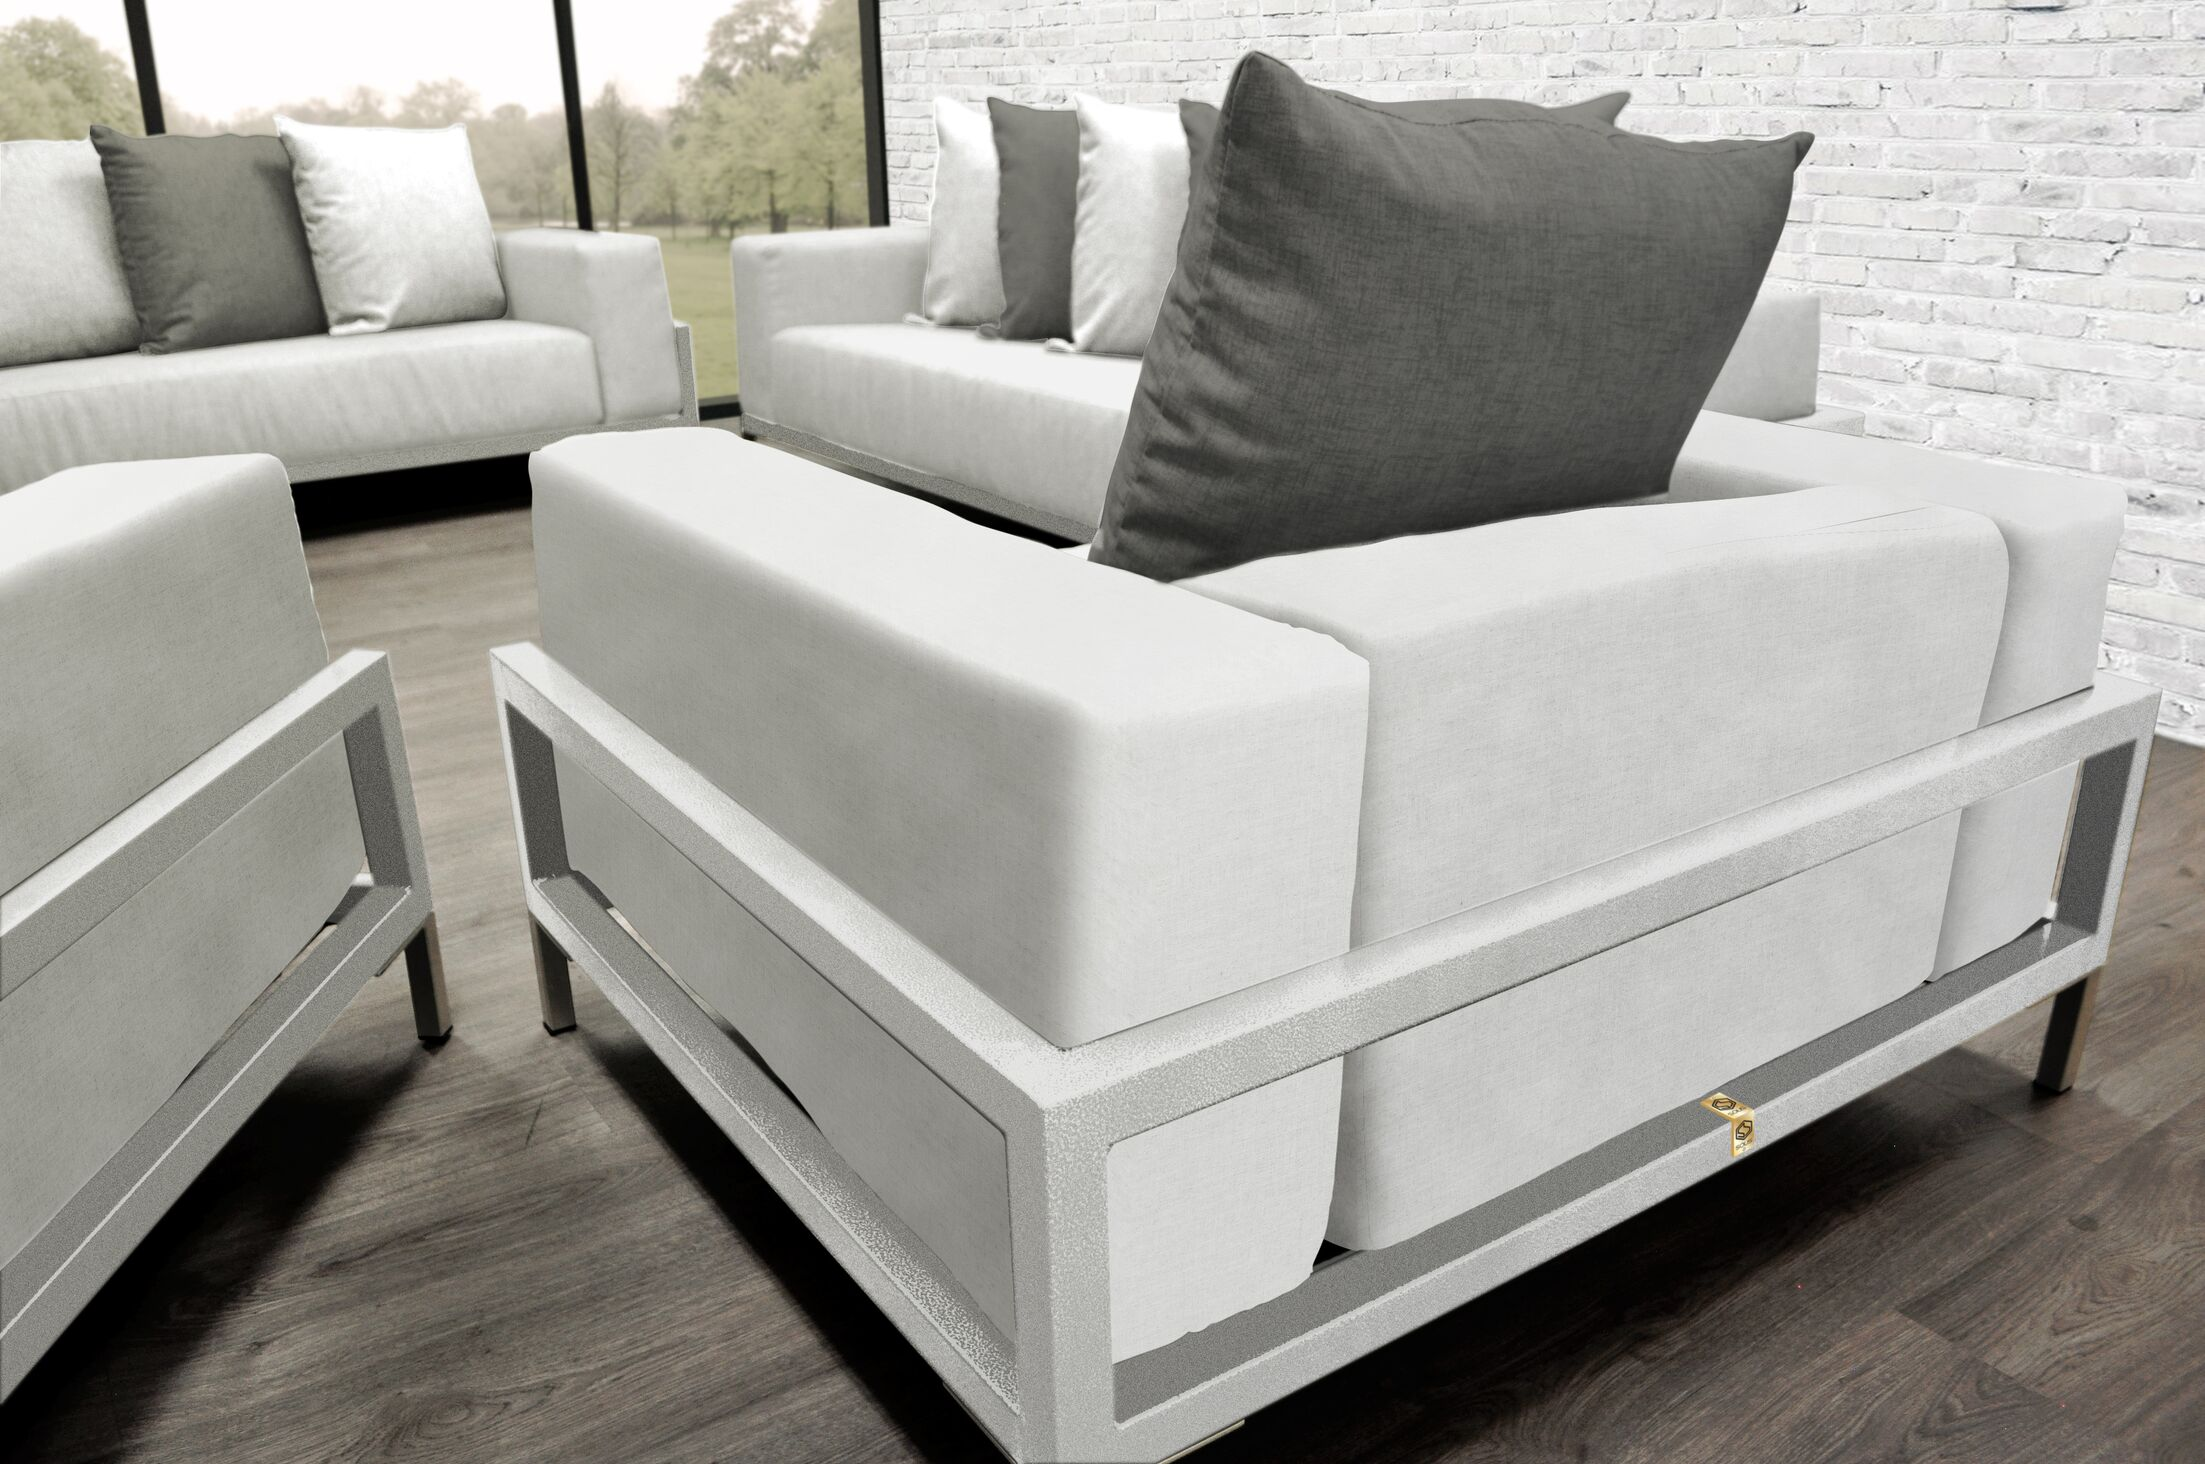 Tilly Modern 4 Piece Sofa Set with Cushions Accent Pillow Fabric: Dark Oyster/White